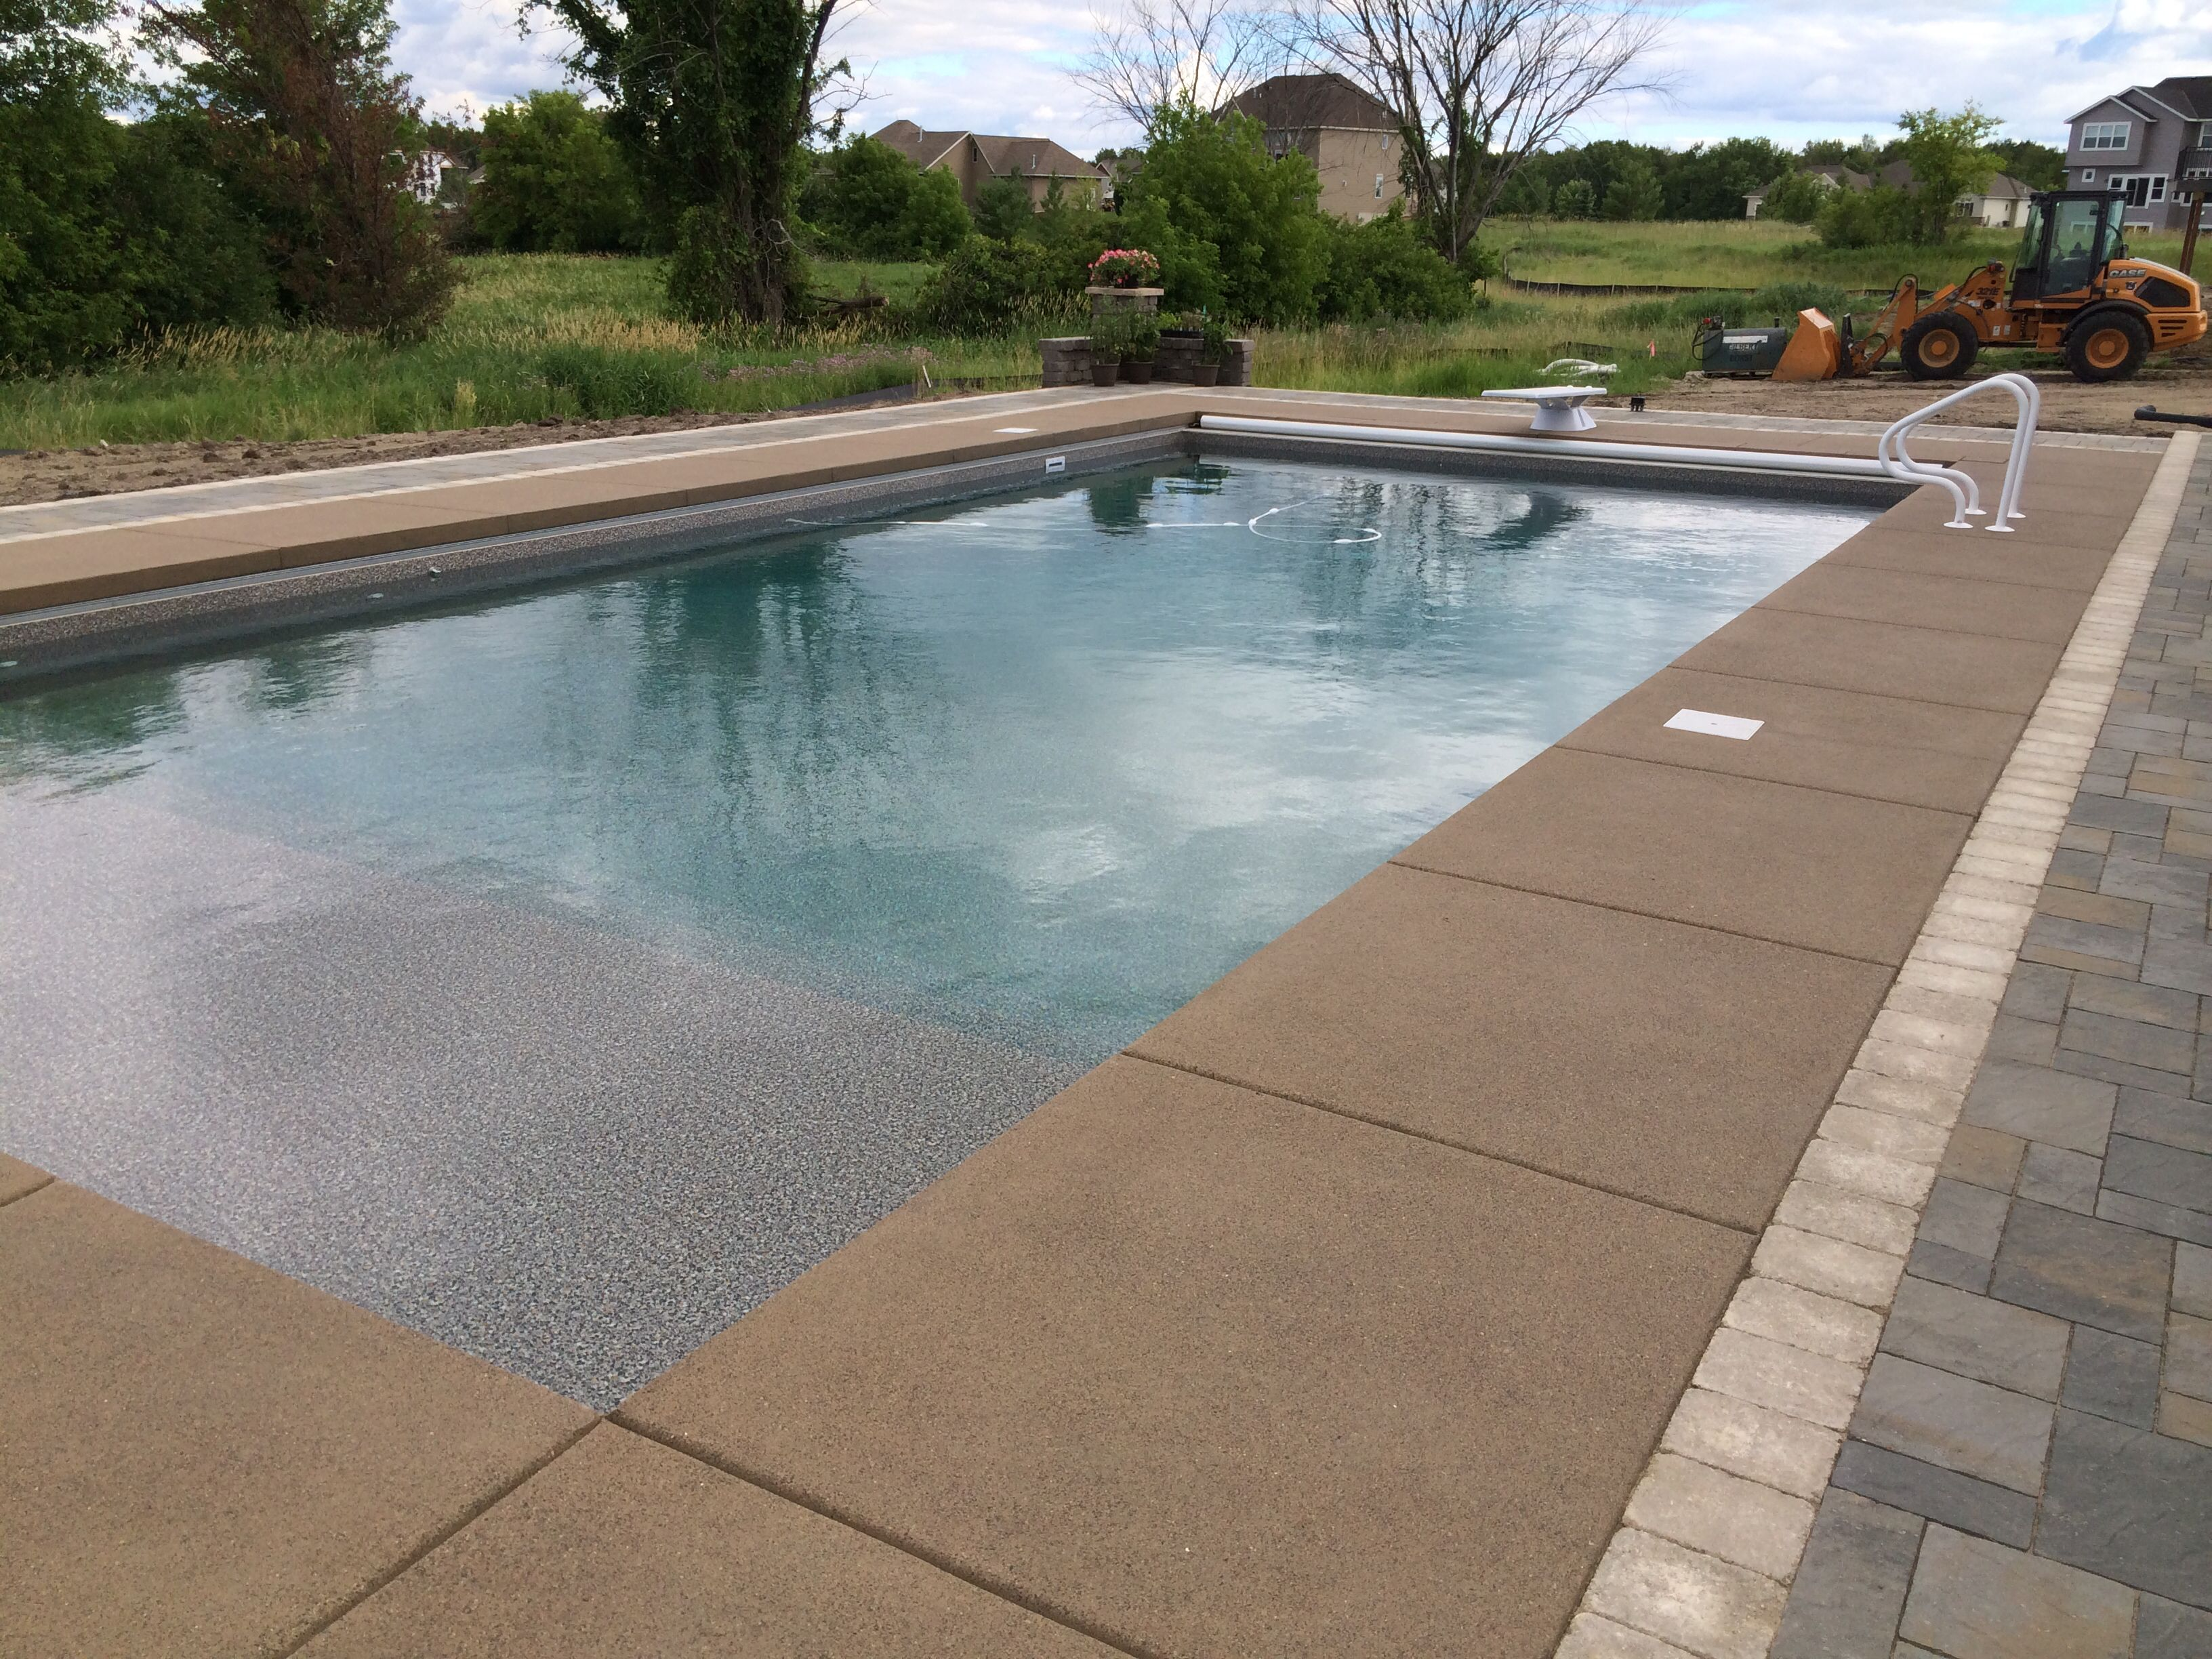 Colored Concrete Pool Deck Sierra Concrete Art's Exclusive Microetch Finished Colored